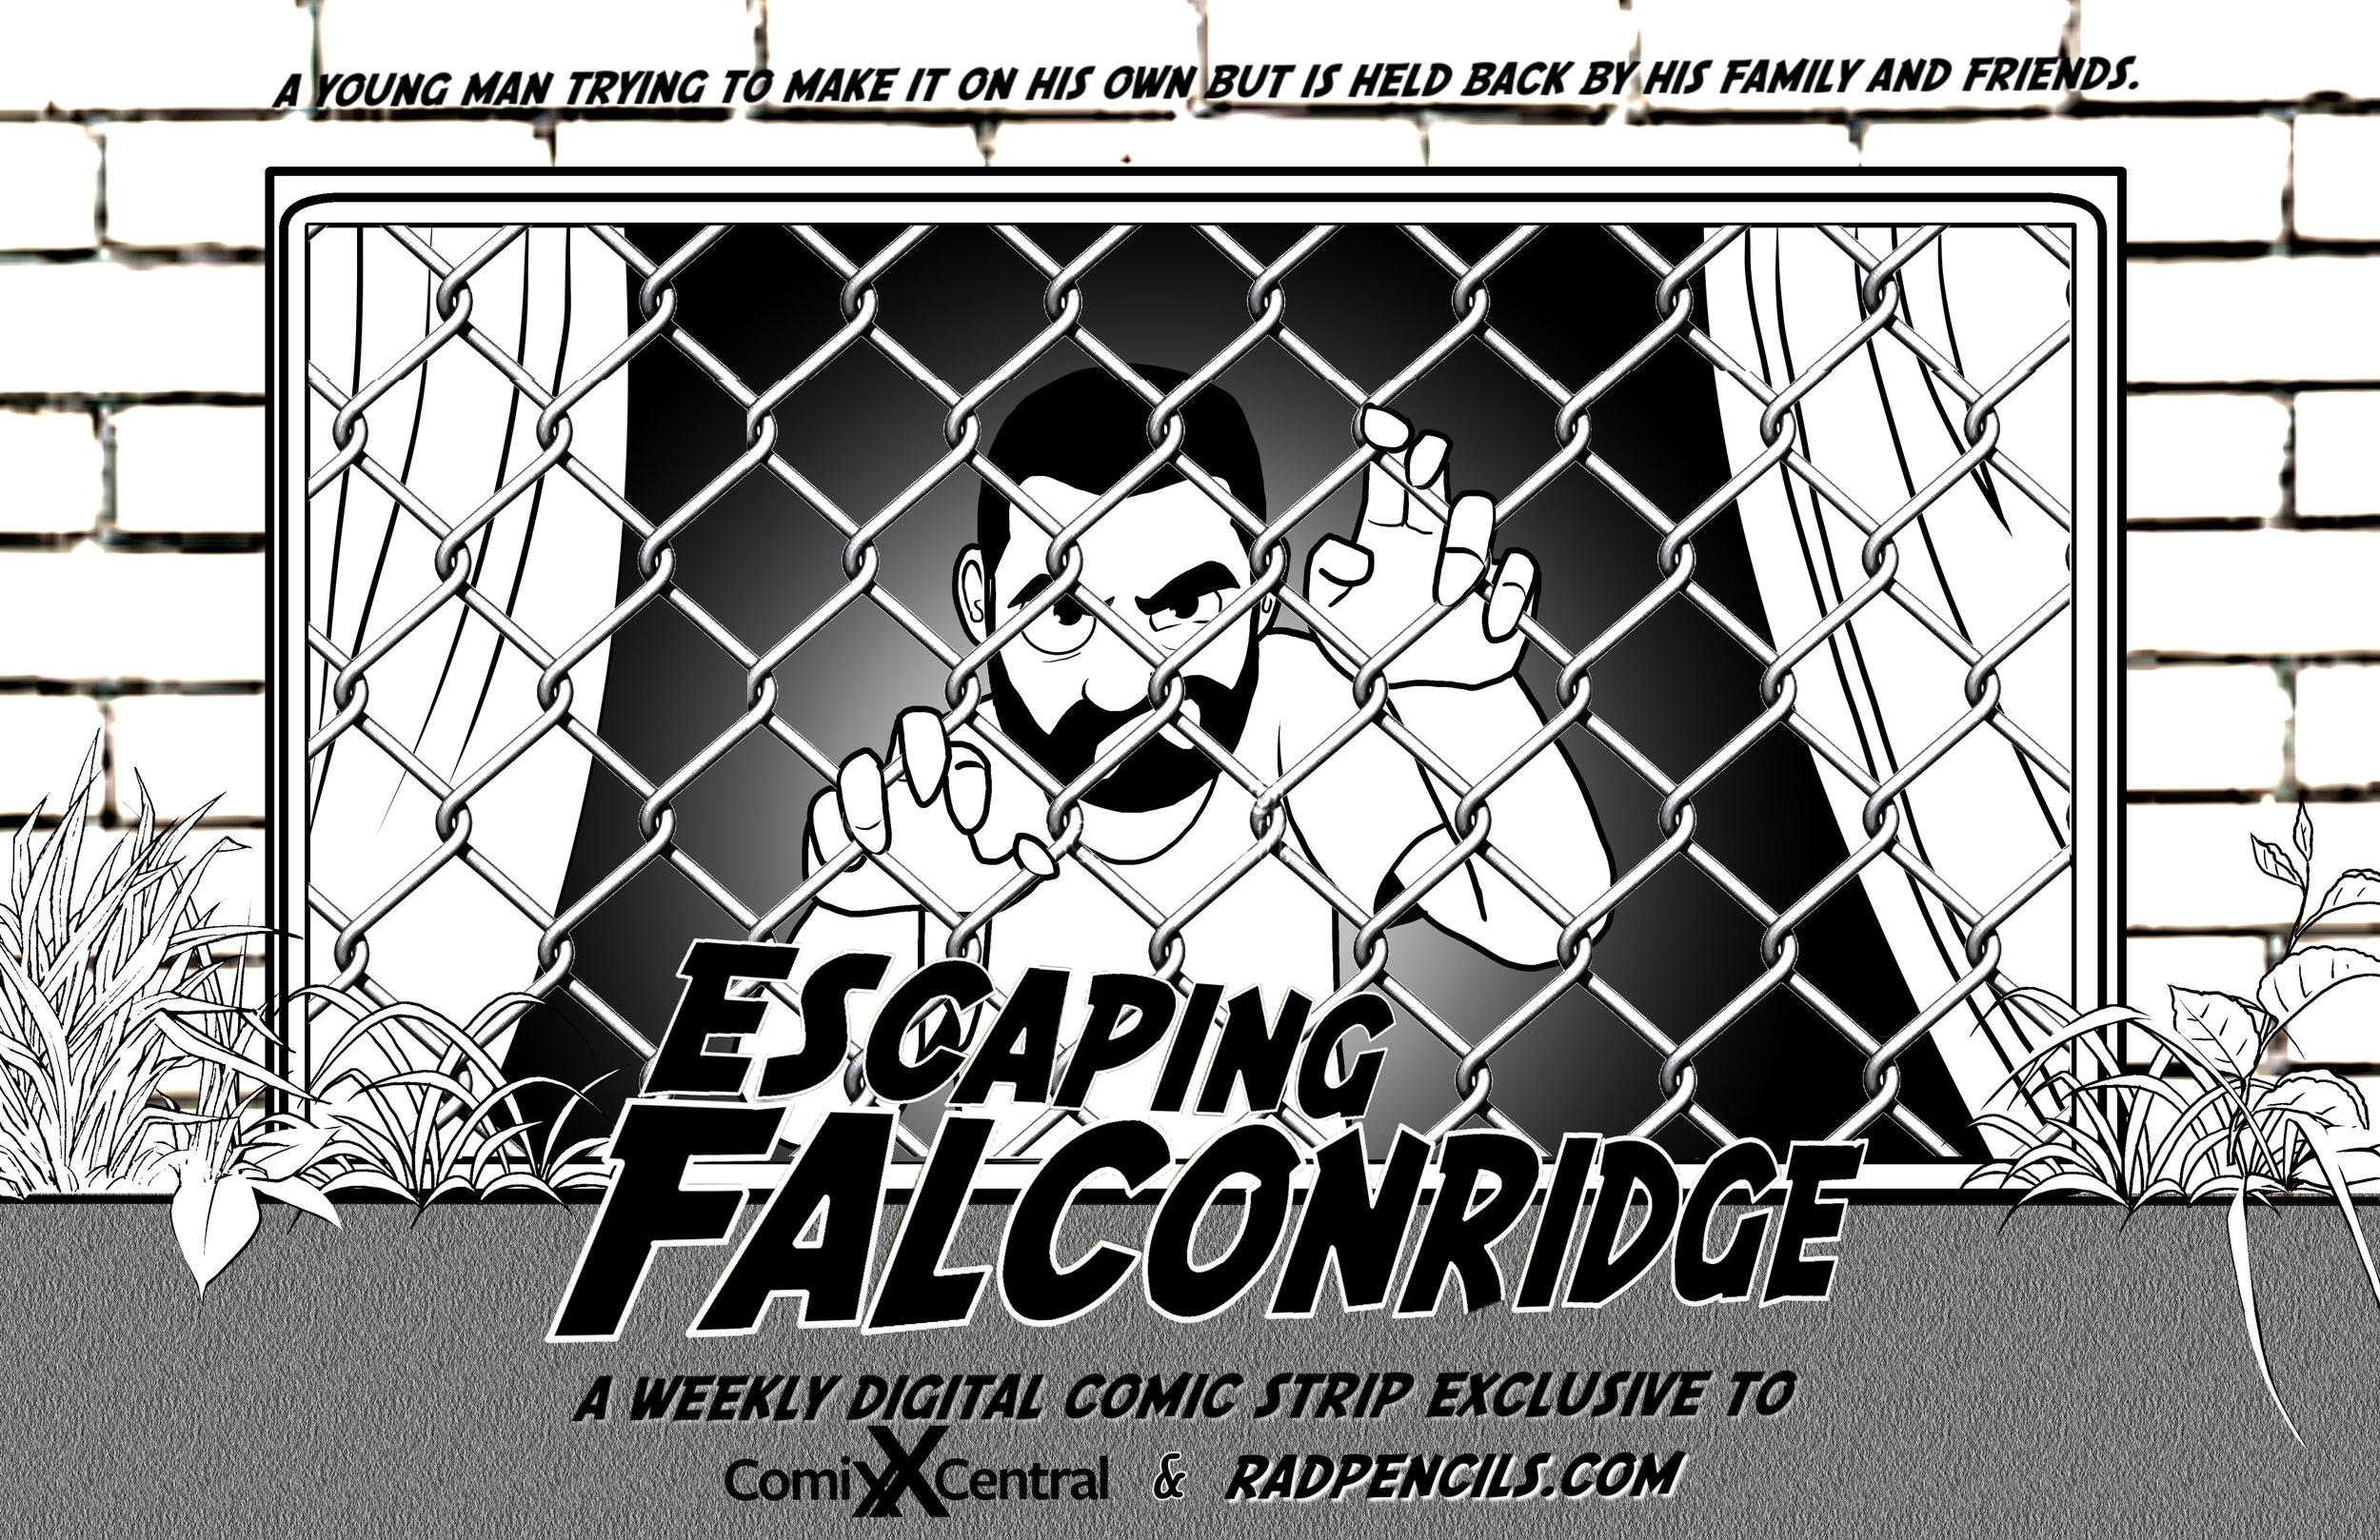 ESCAPING FALCONRIDGE AD 2018.jpg